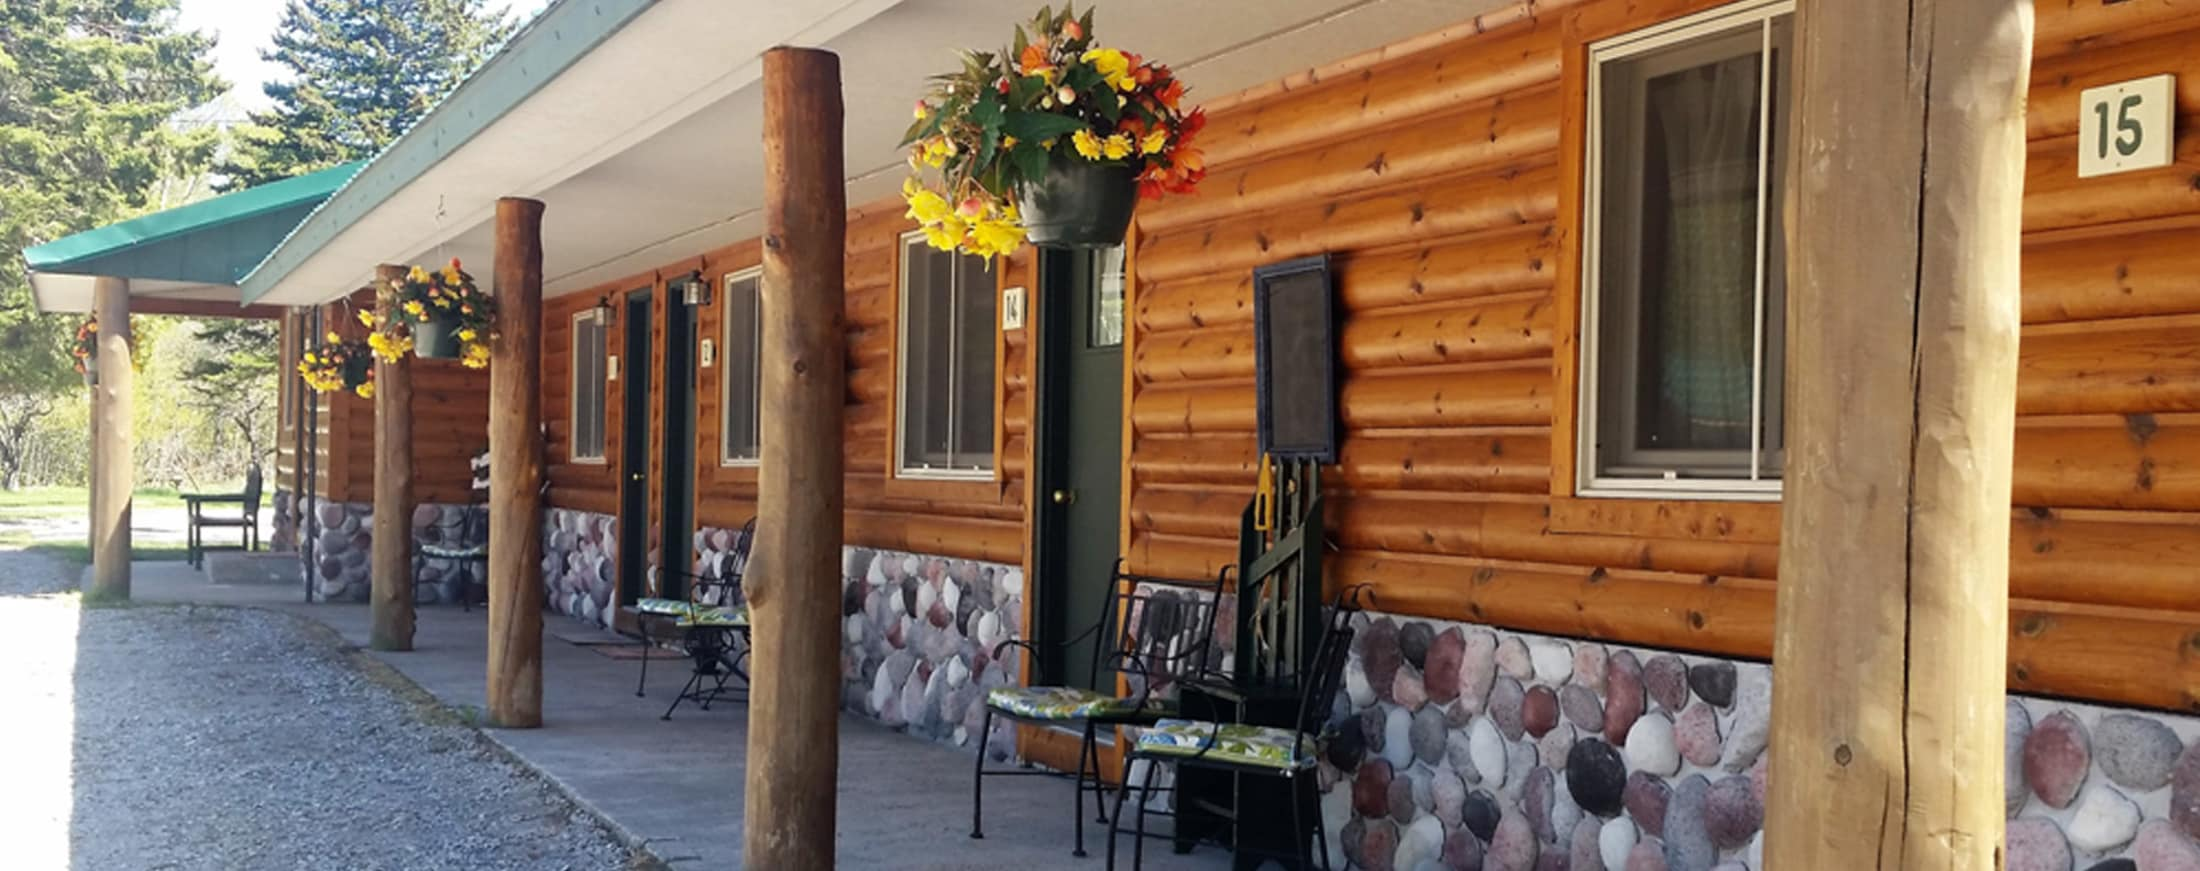 Hilltop Cabins | Lakeside Cabin Rentals & Motel in Grand